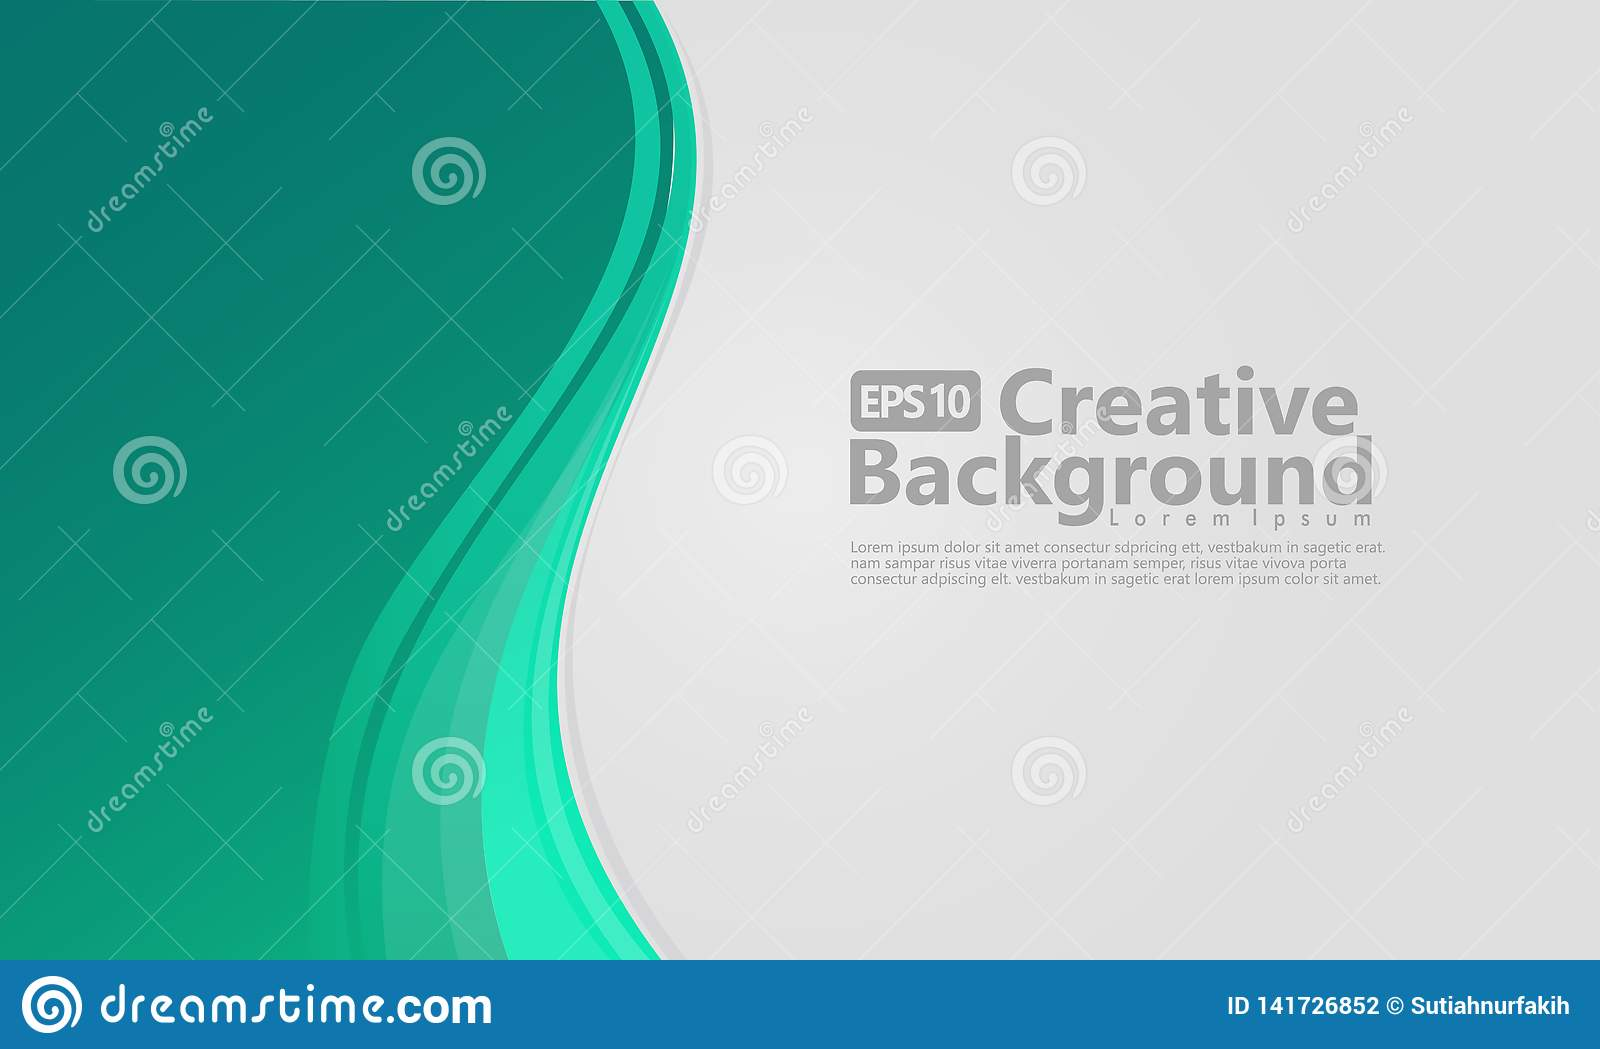 New abstract wave style creative background